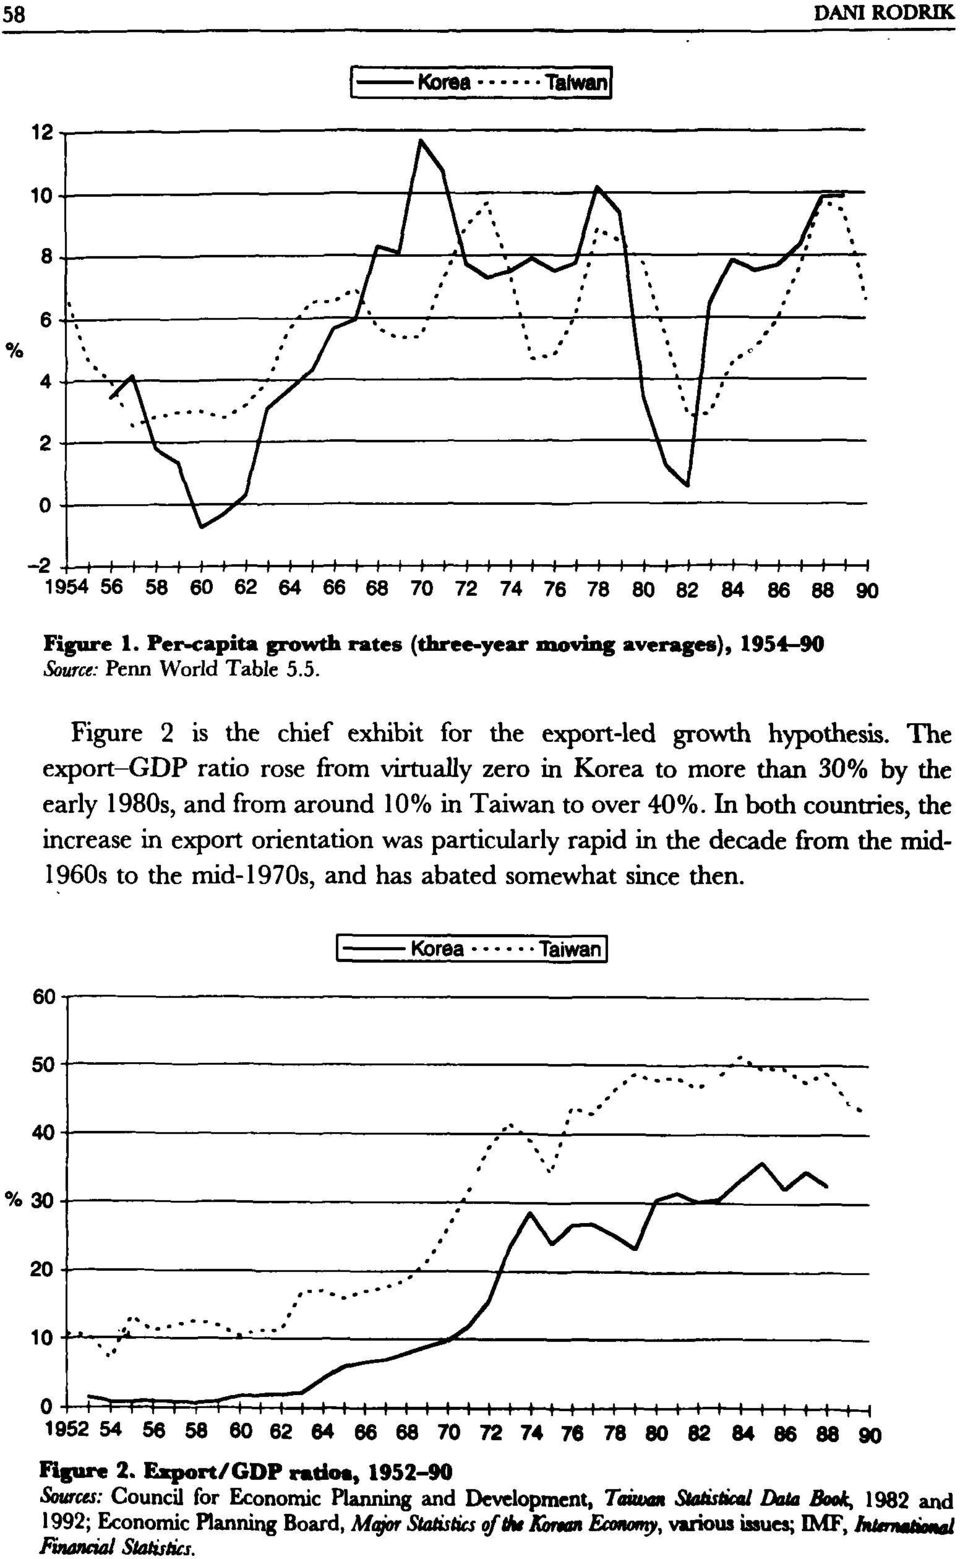 The export-gdp ratio rose from virtually zero in Korea to more than 30% by the early 1980s, and from around 10% in Taiwan to over 40%.